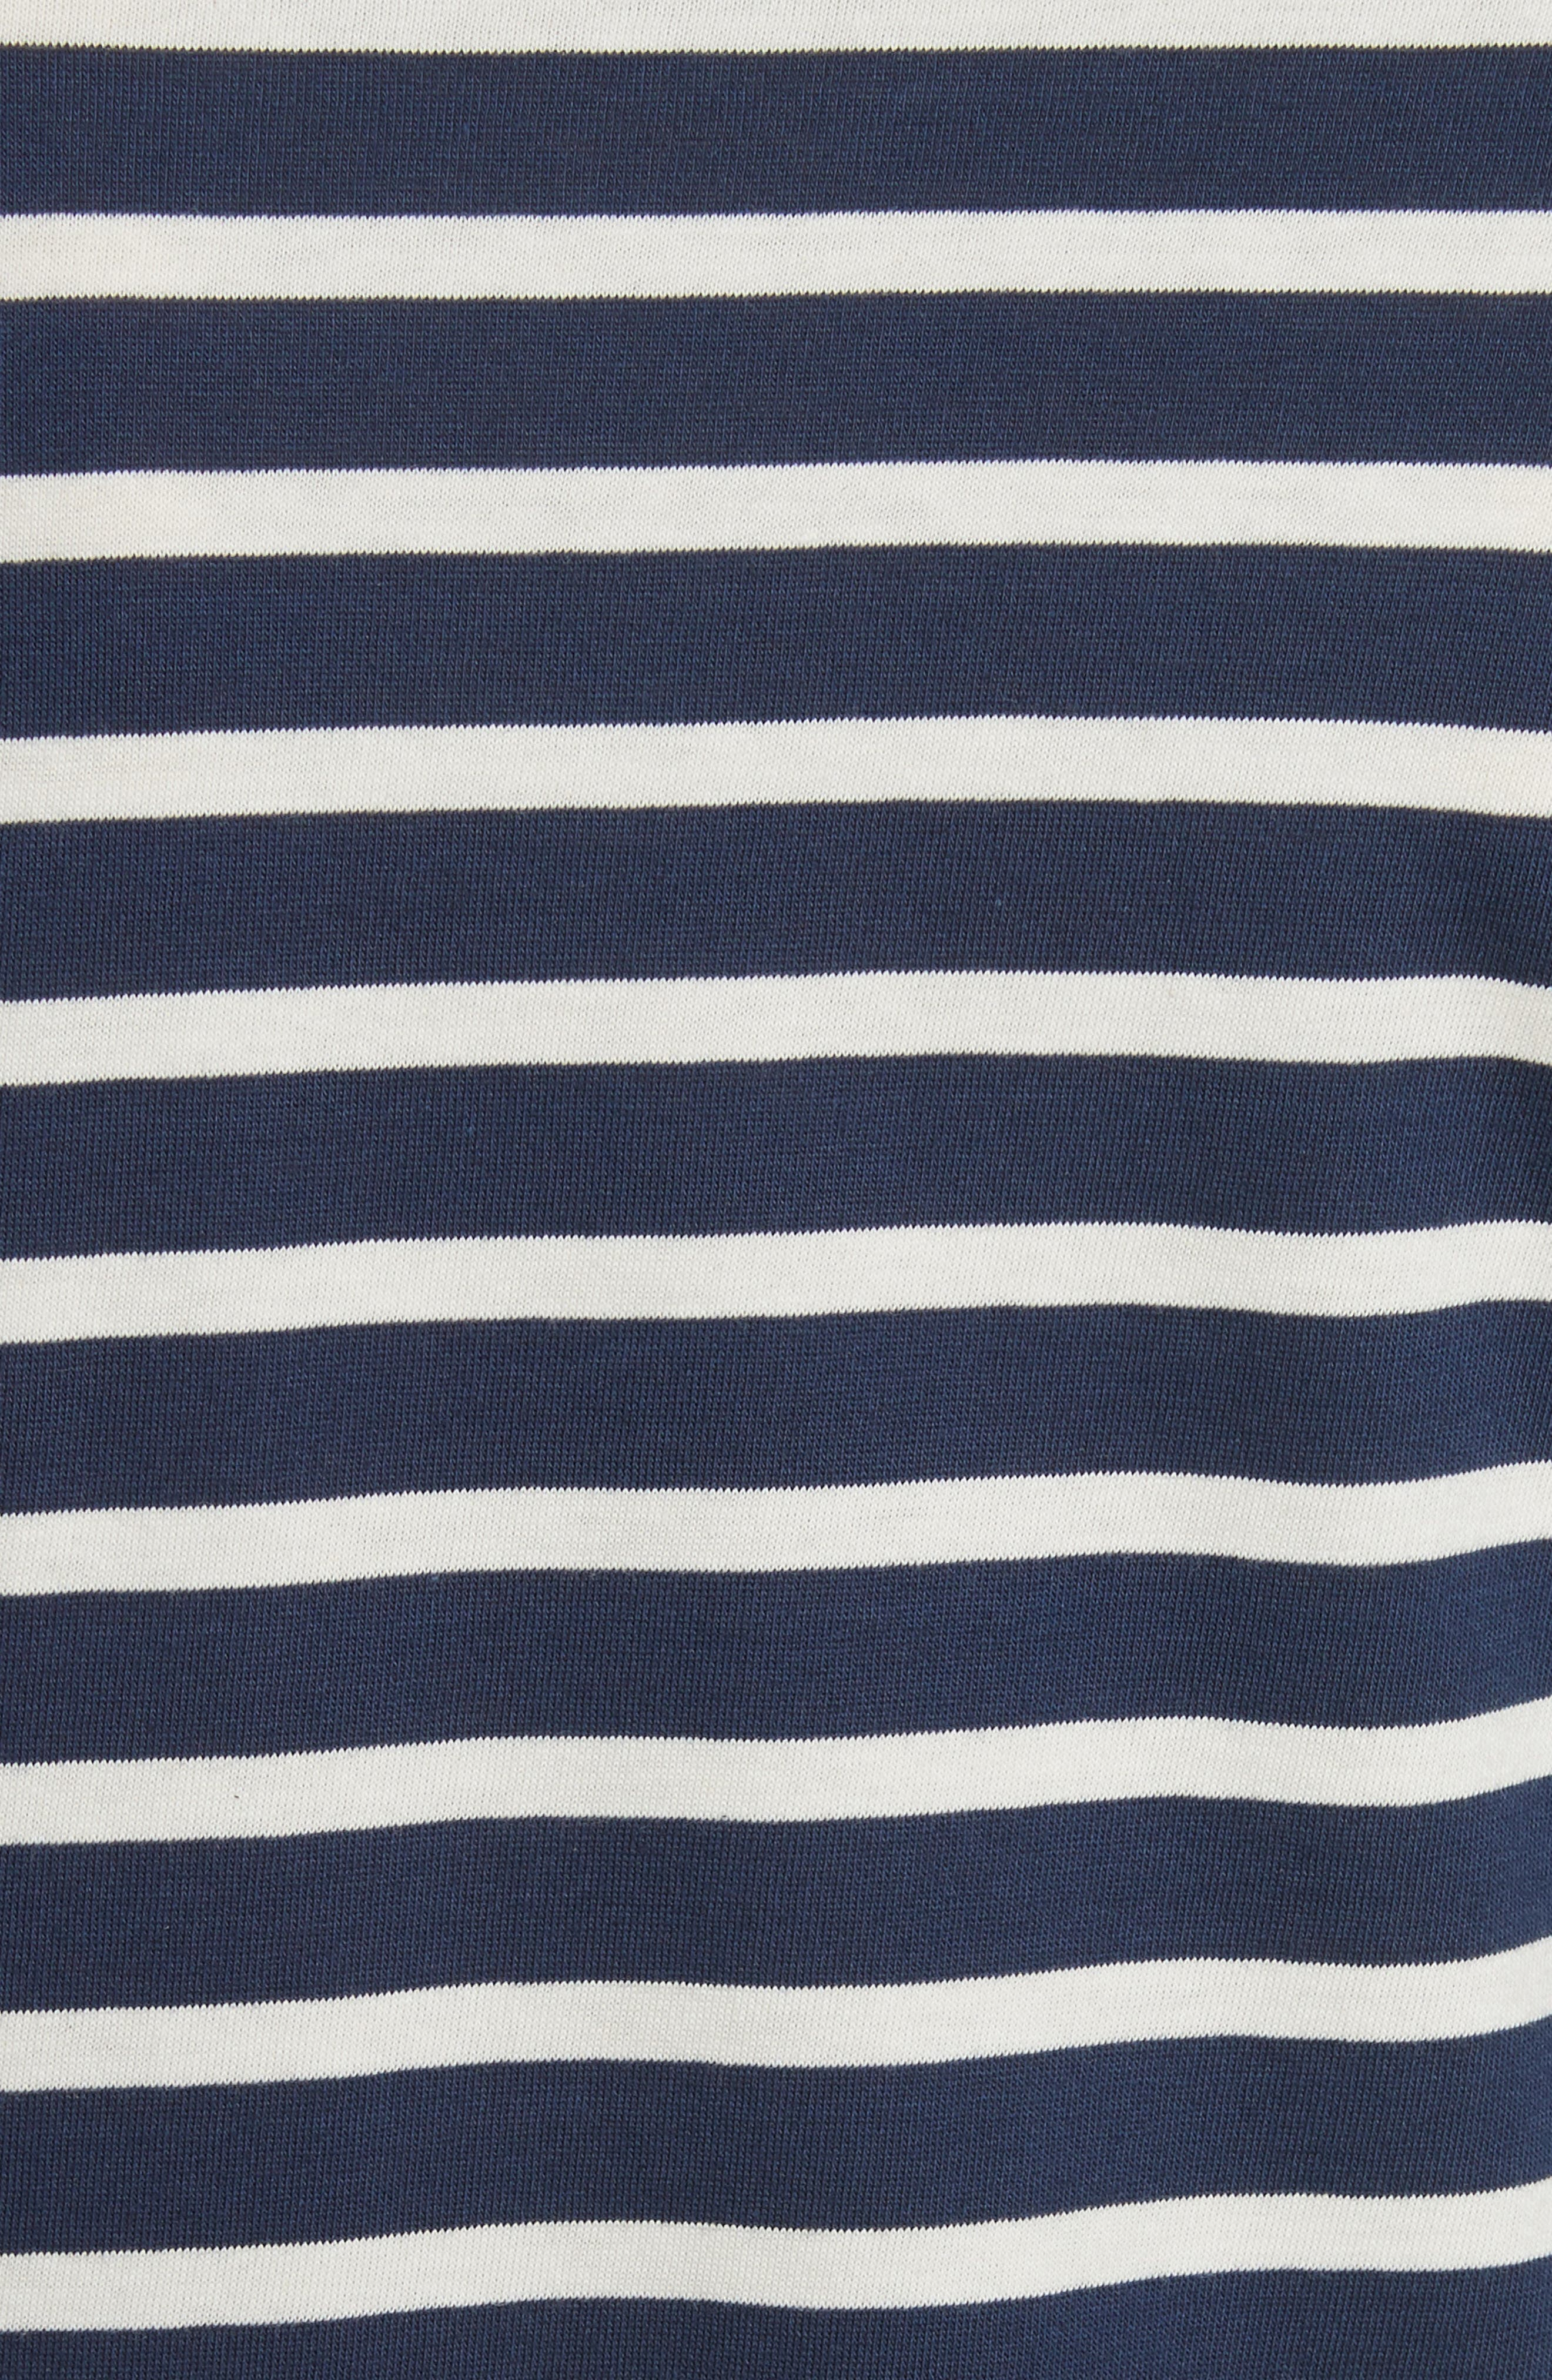 Minquiers Moderne Striped Sailor Shirt,                             Alternate thumbnail 6, color,                             Navy/ Off White